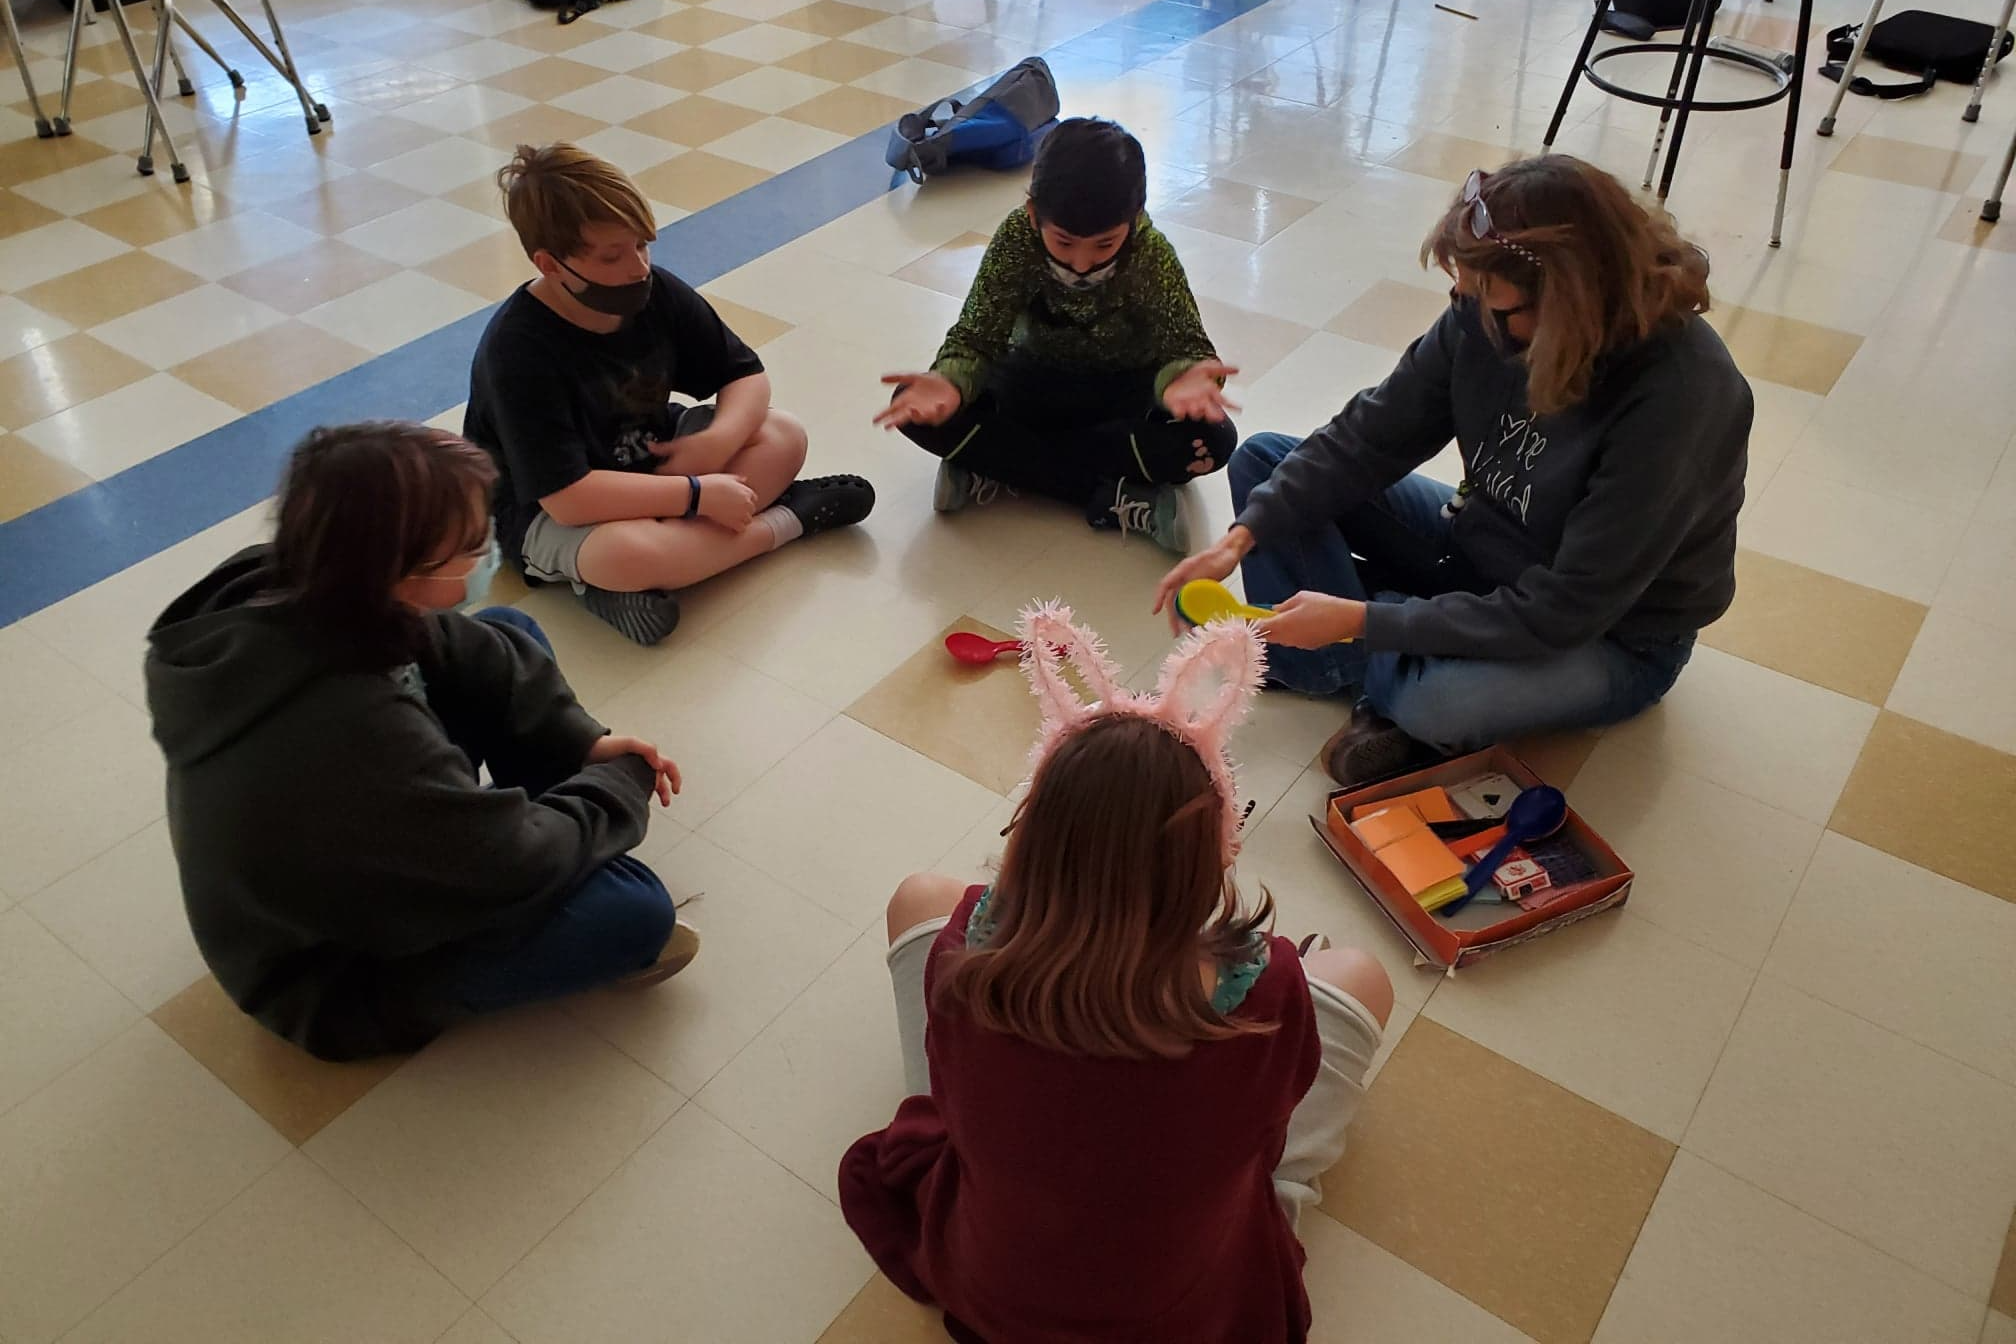 Image of students working together